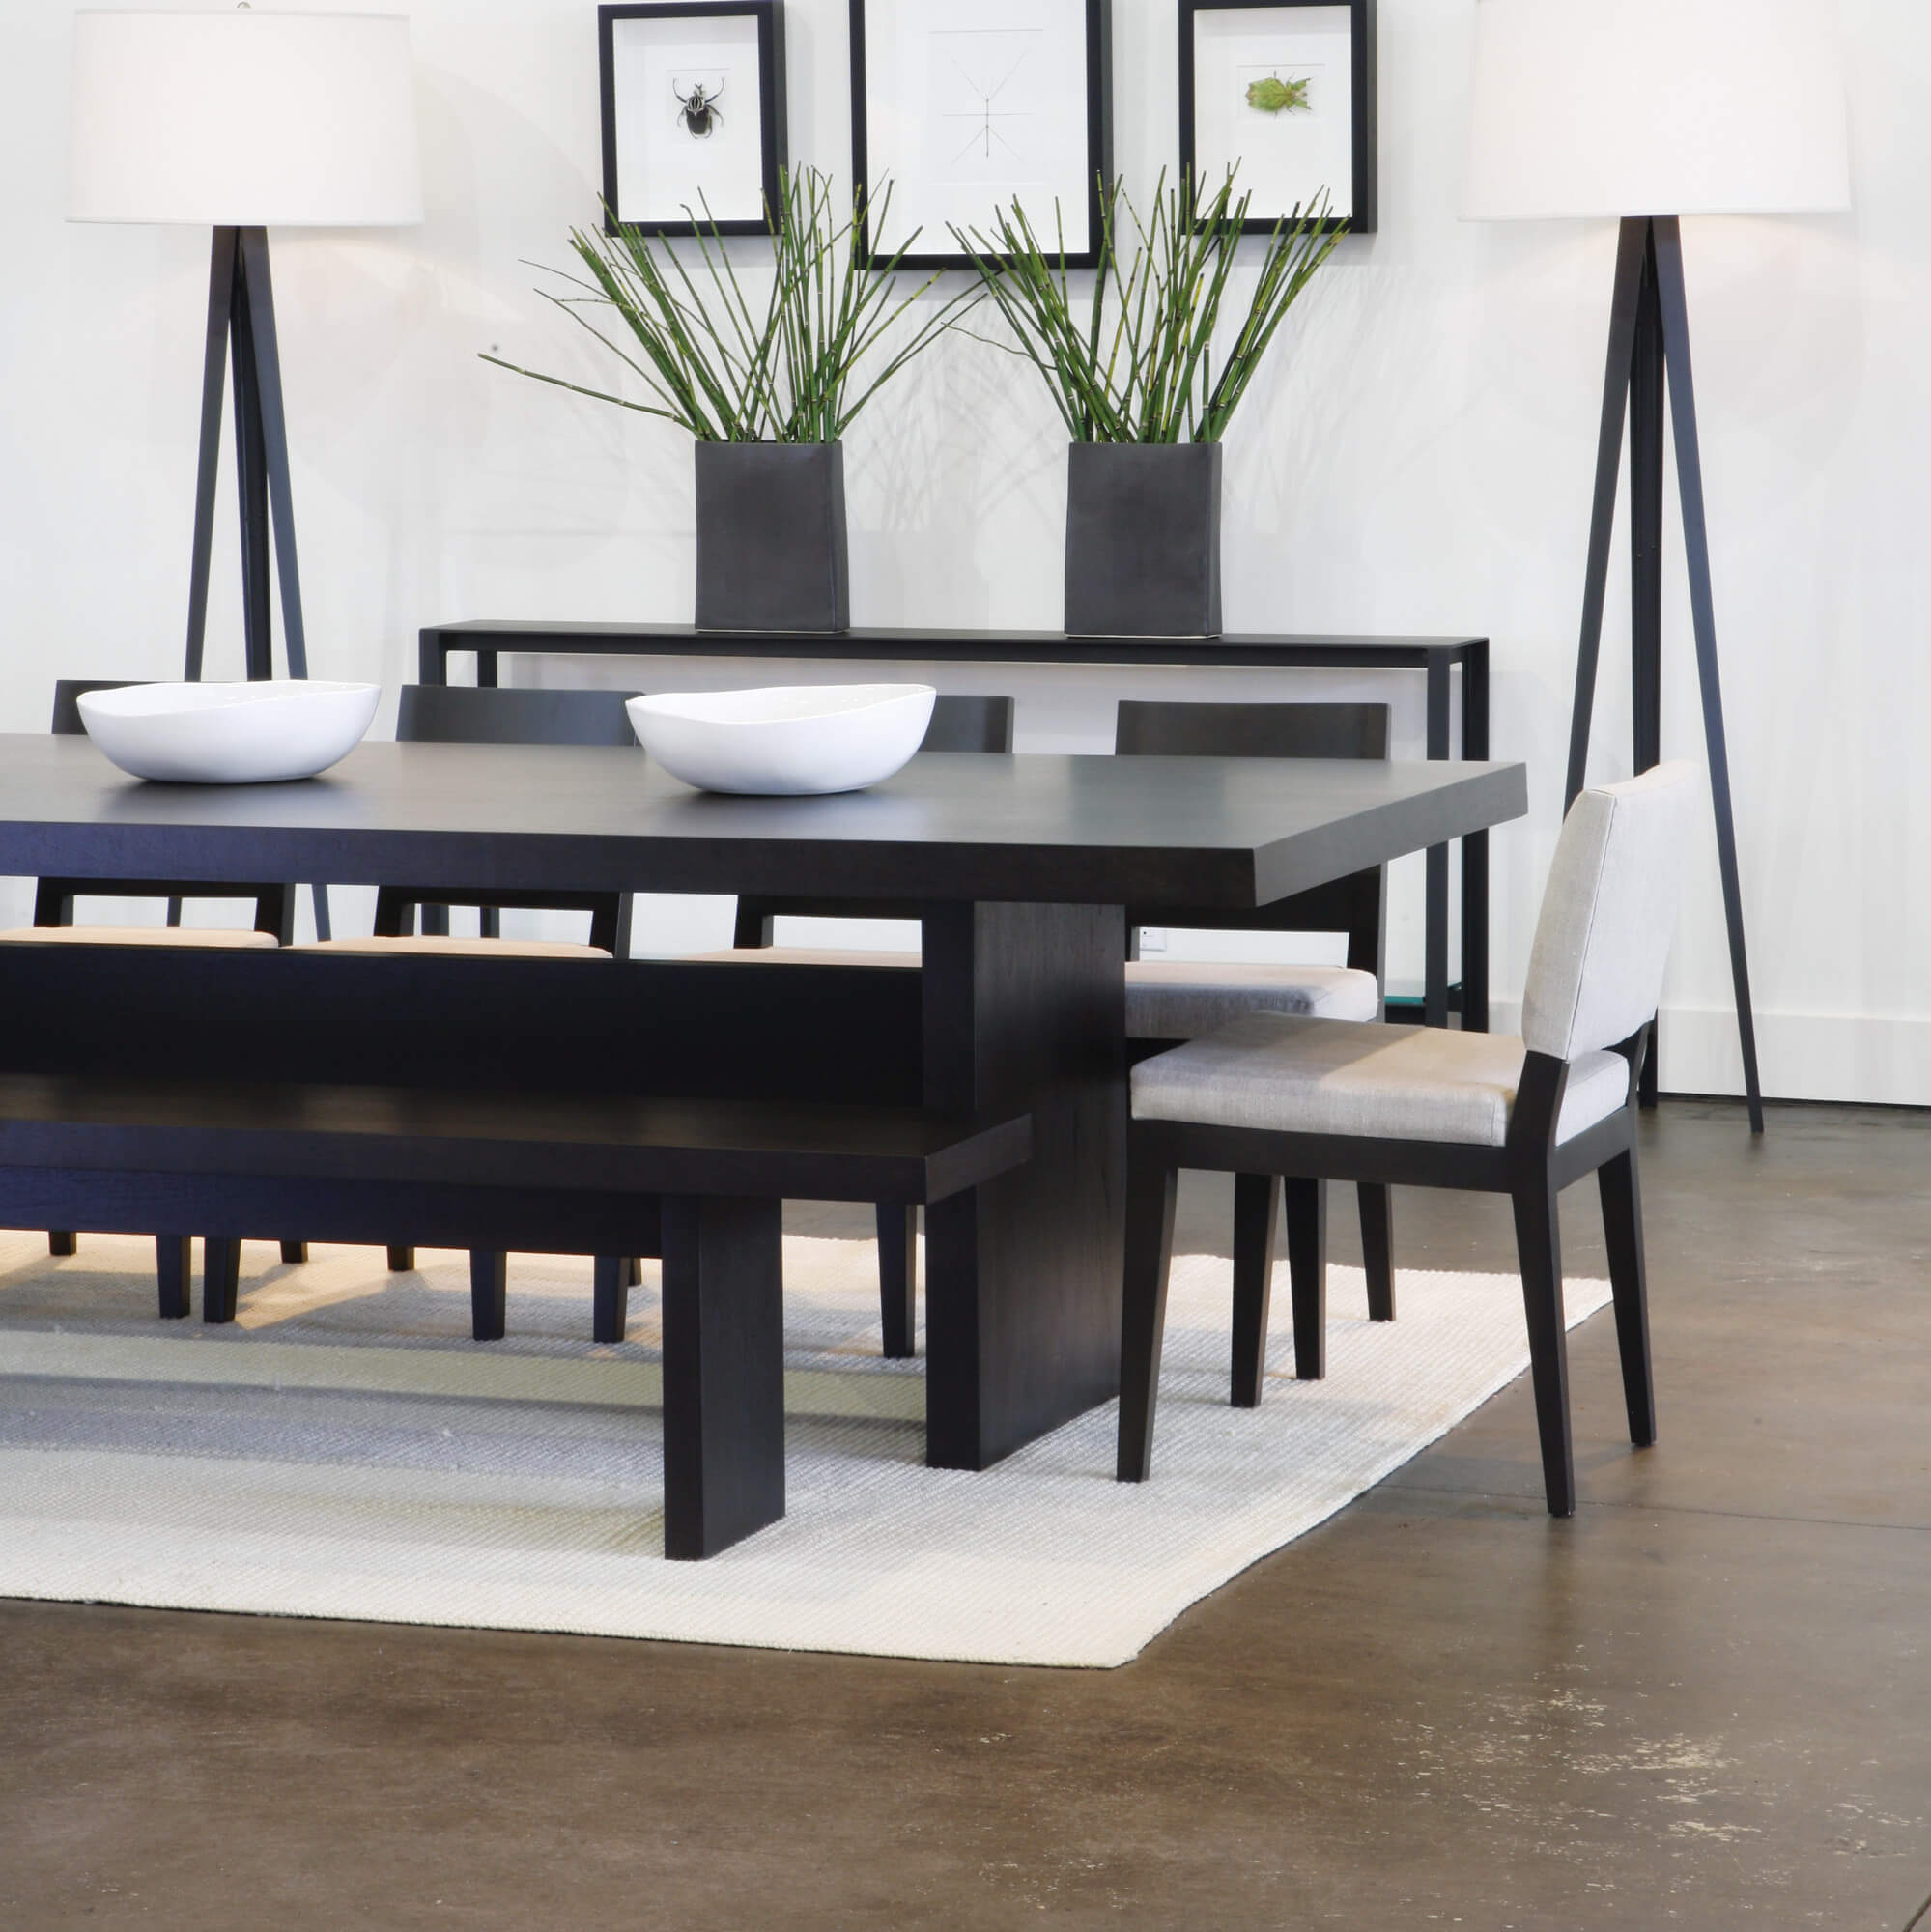 dining room table with bench and chairs 5 piece modern dining room set with bench. this is WRTENWW